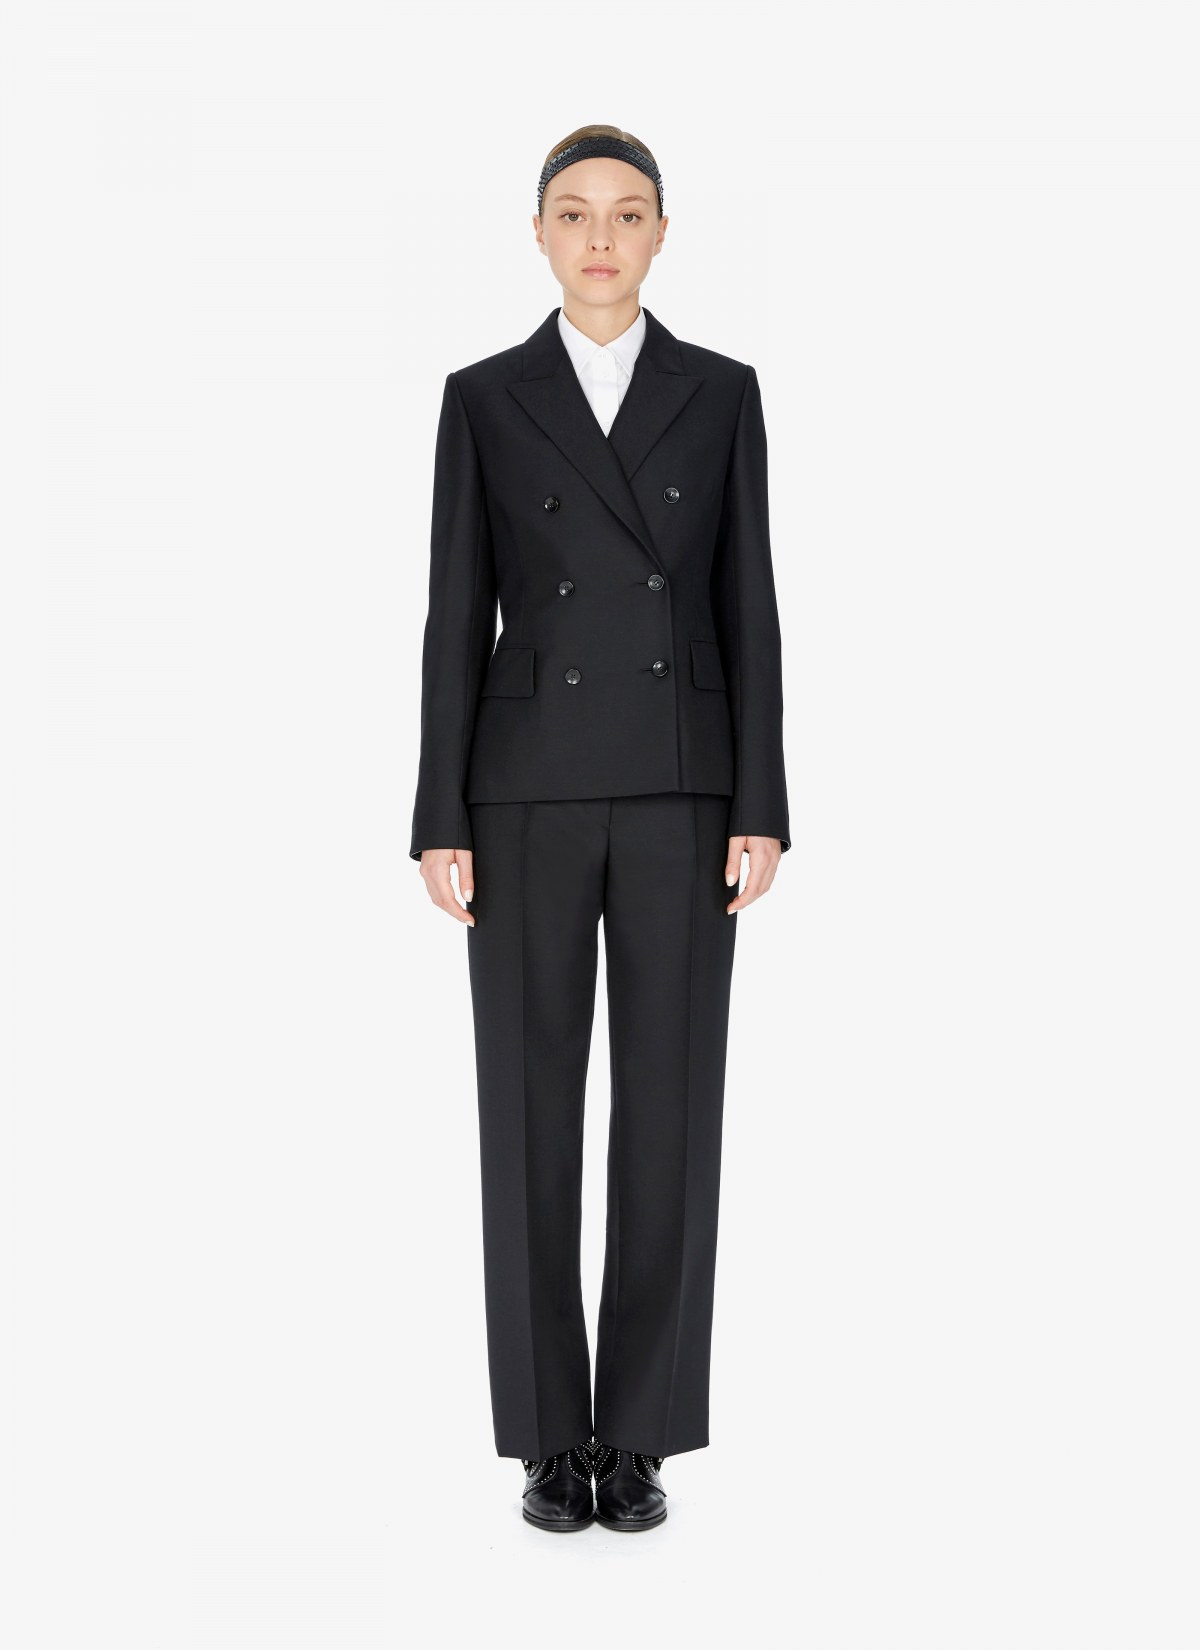 Wool-Blend Double-Breasted Blazer by Alaia, available on maison-alaia.com for $3044 Kylie Jenner Outerwear SIMILAR PRODUCT